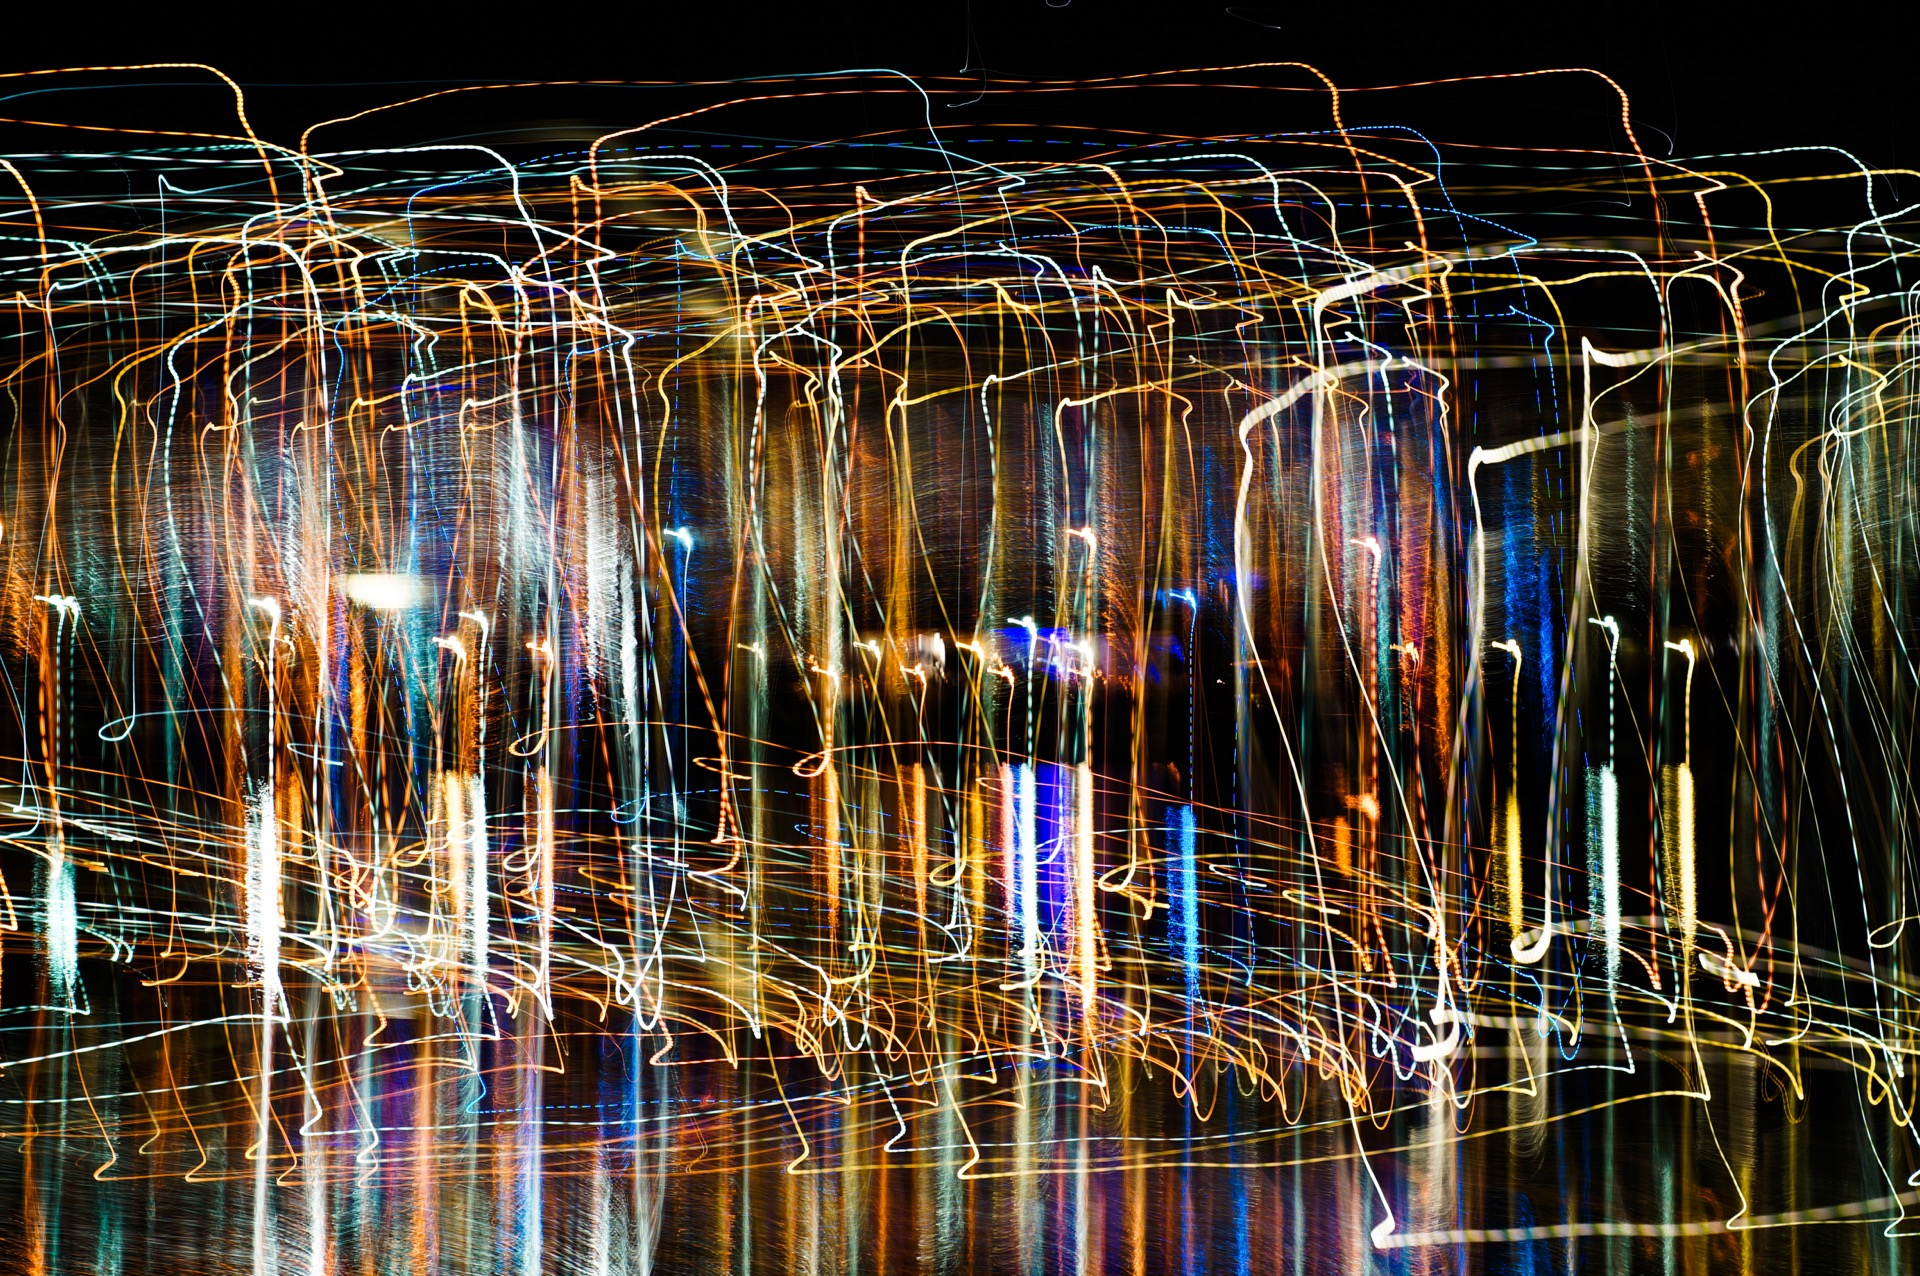 An abstract picture showing large vertical rectangles using light painting technique with vivid mixed rainbow colors on a black background